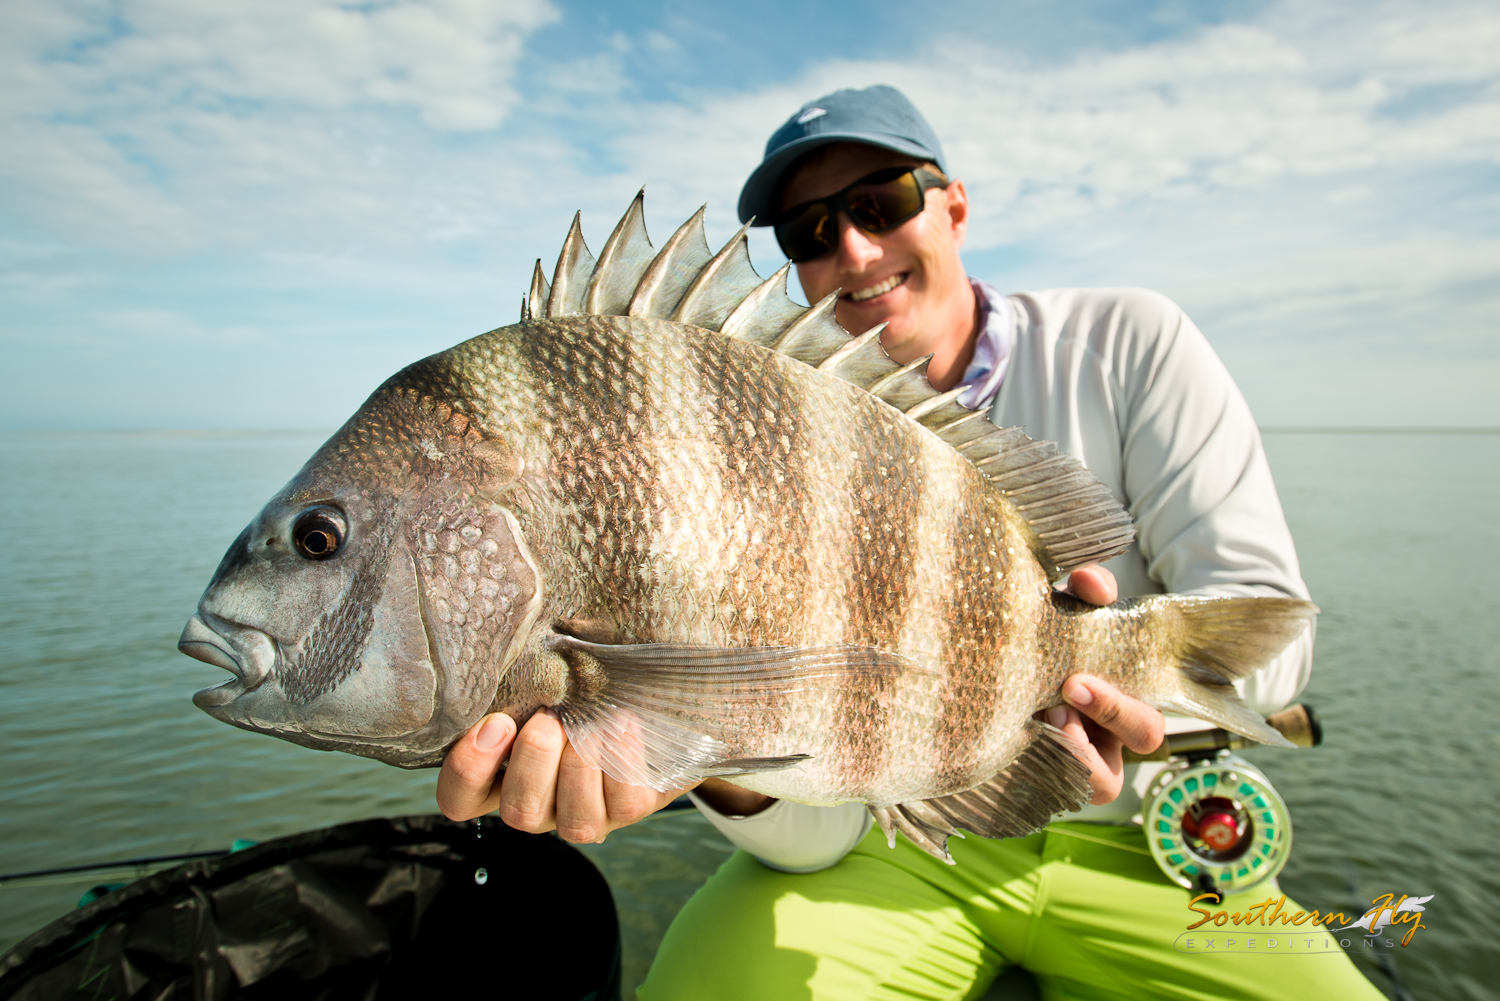 Light Tackle Fly Fishing Guide New Orleans Southern Fly Expeditions